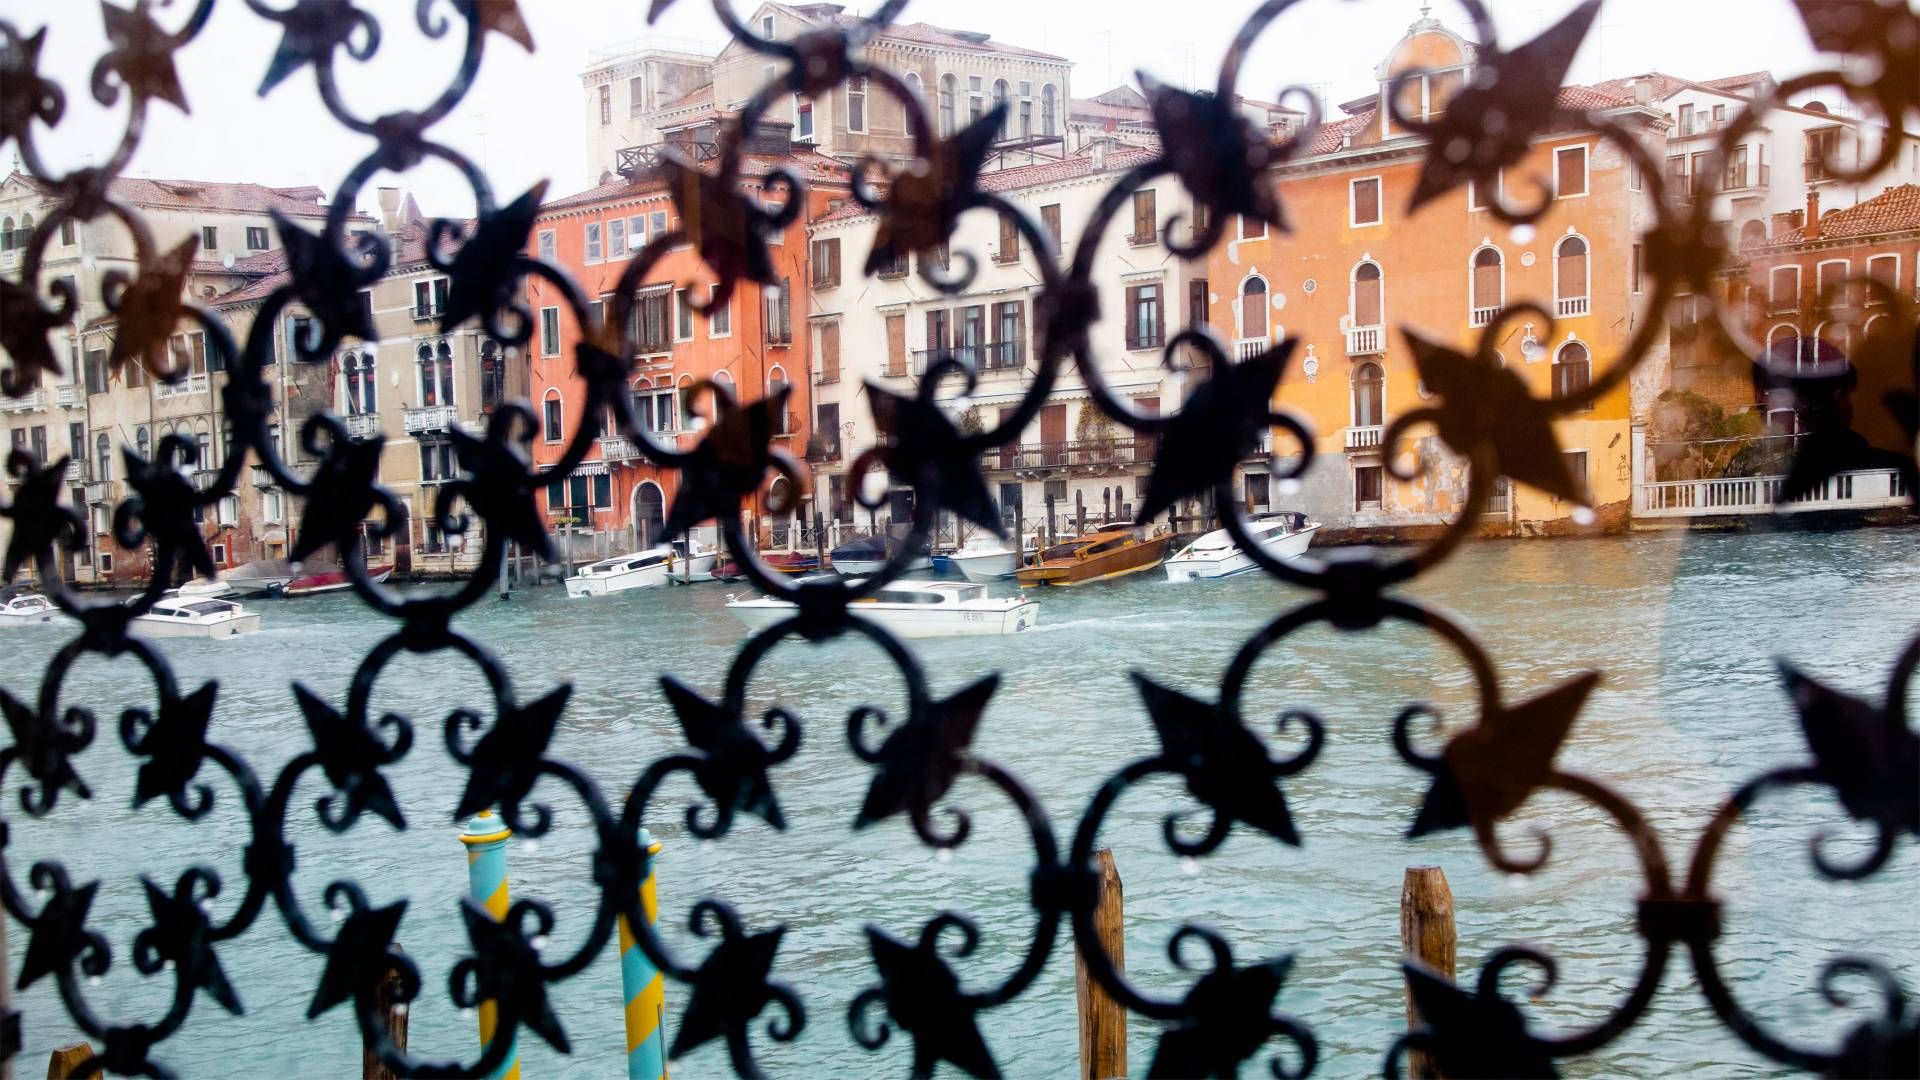 View of canal from Peggy Guggenheim Collection in Venice